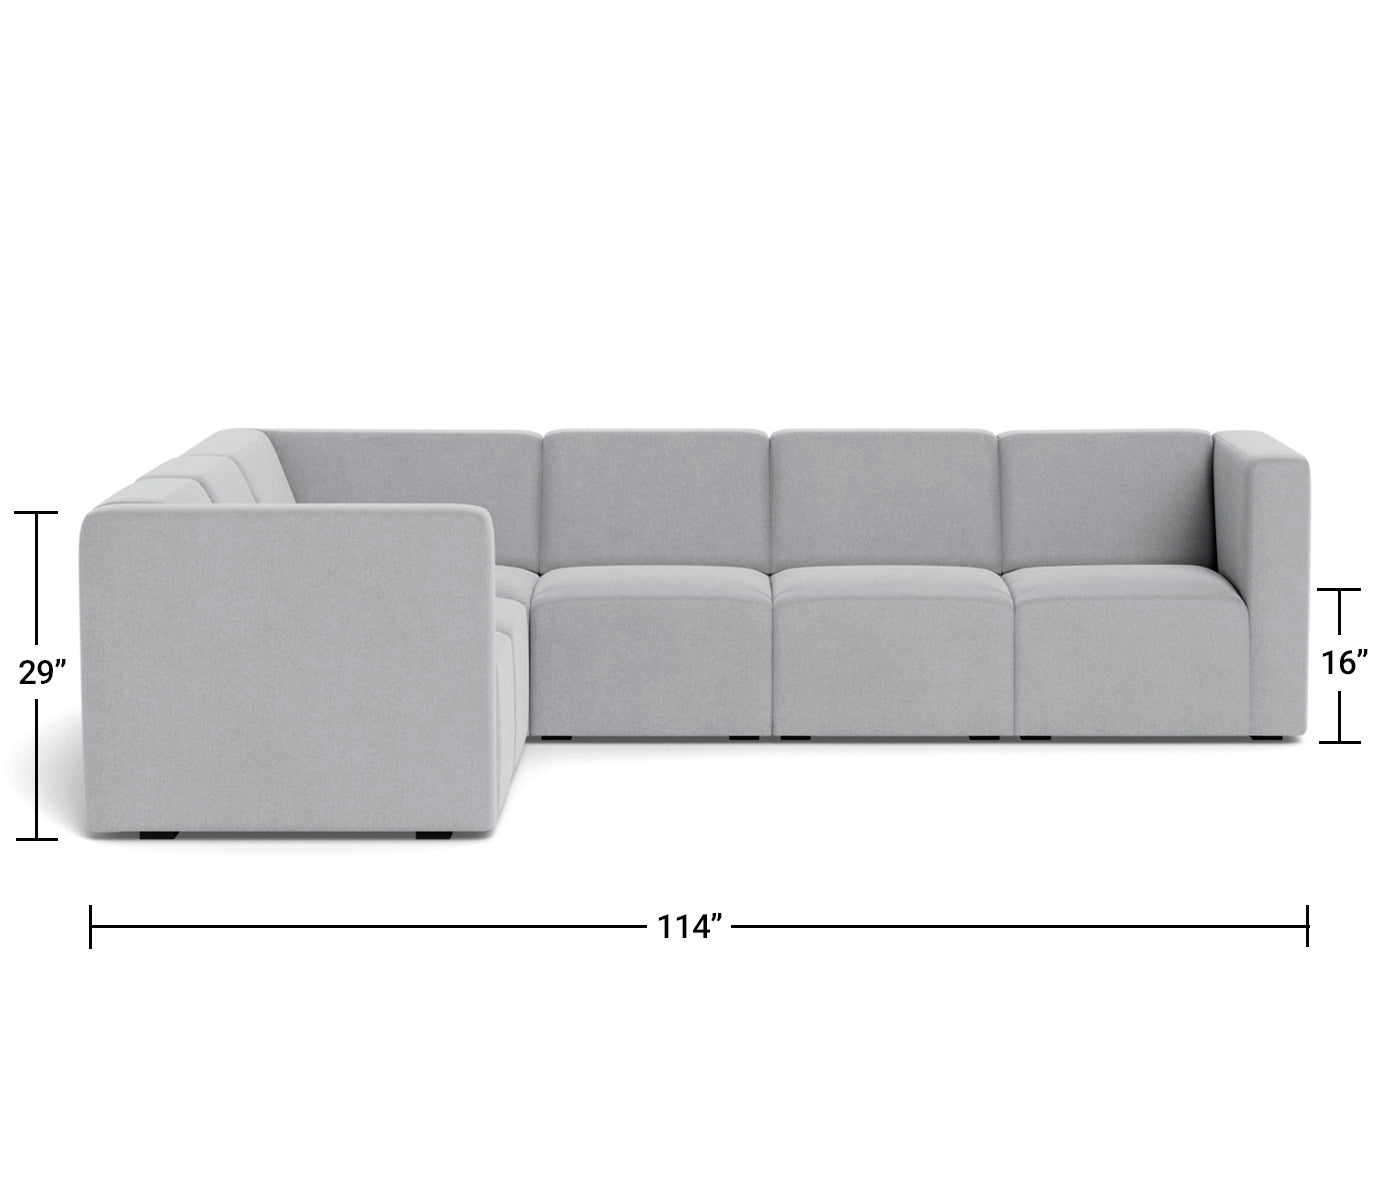 The Bruce Sectional 5-seat + corner Dimensions Front View